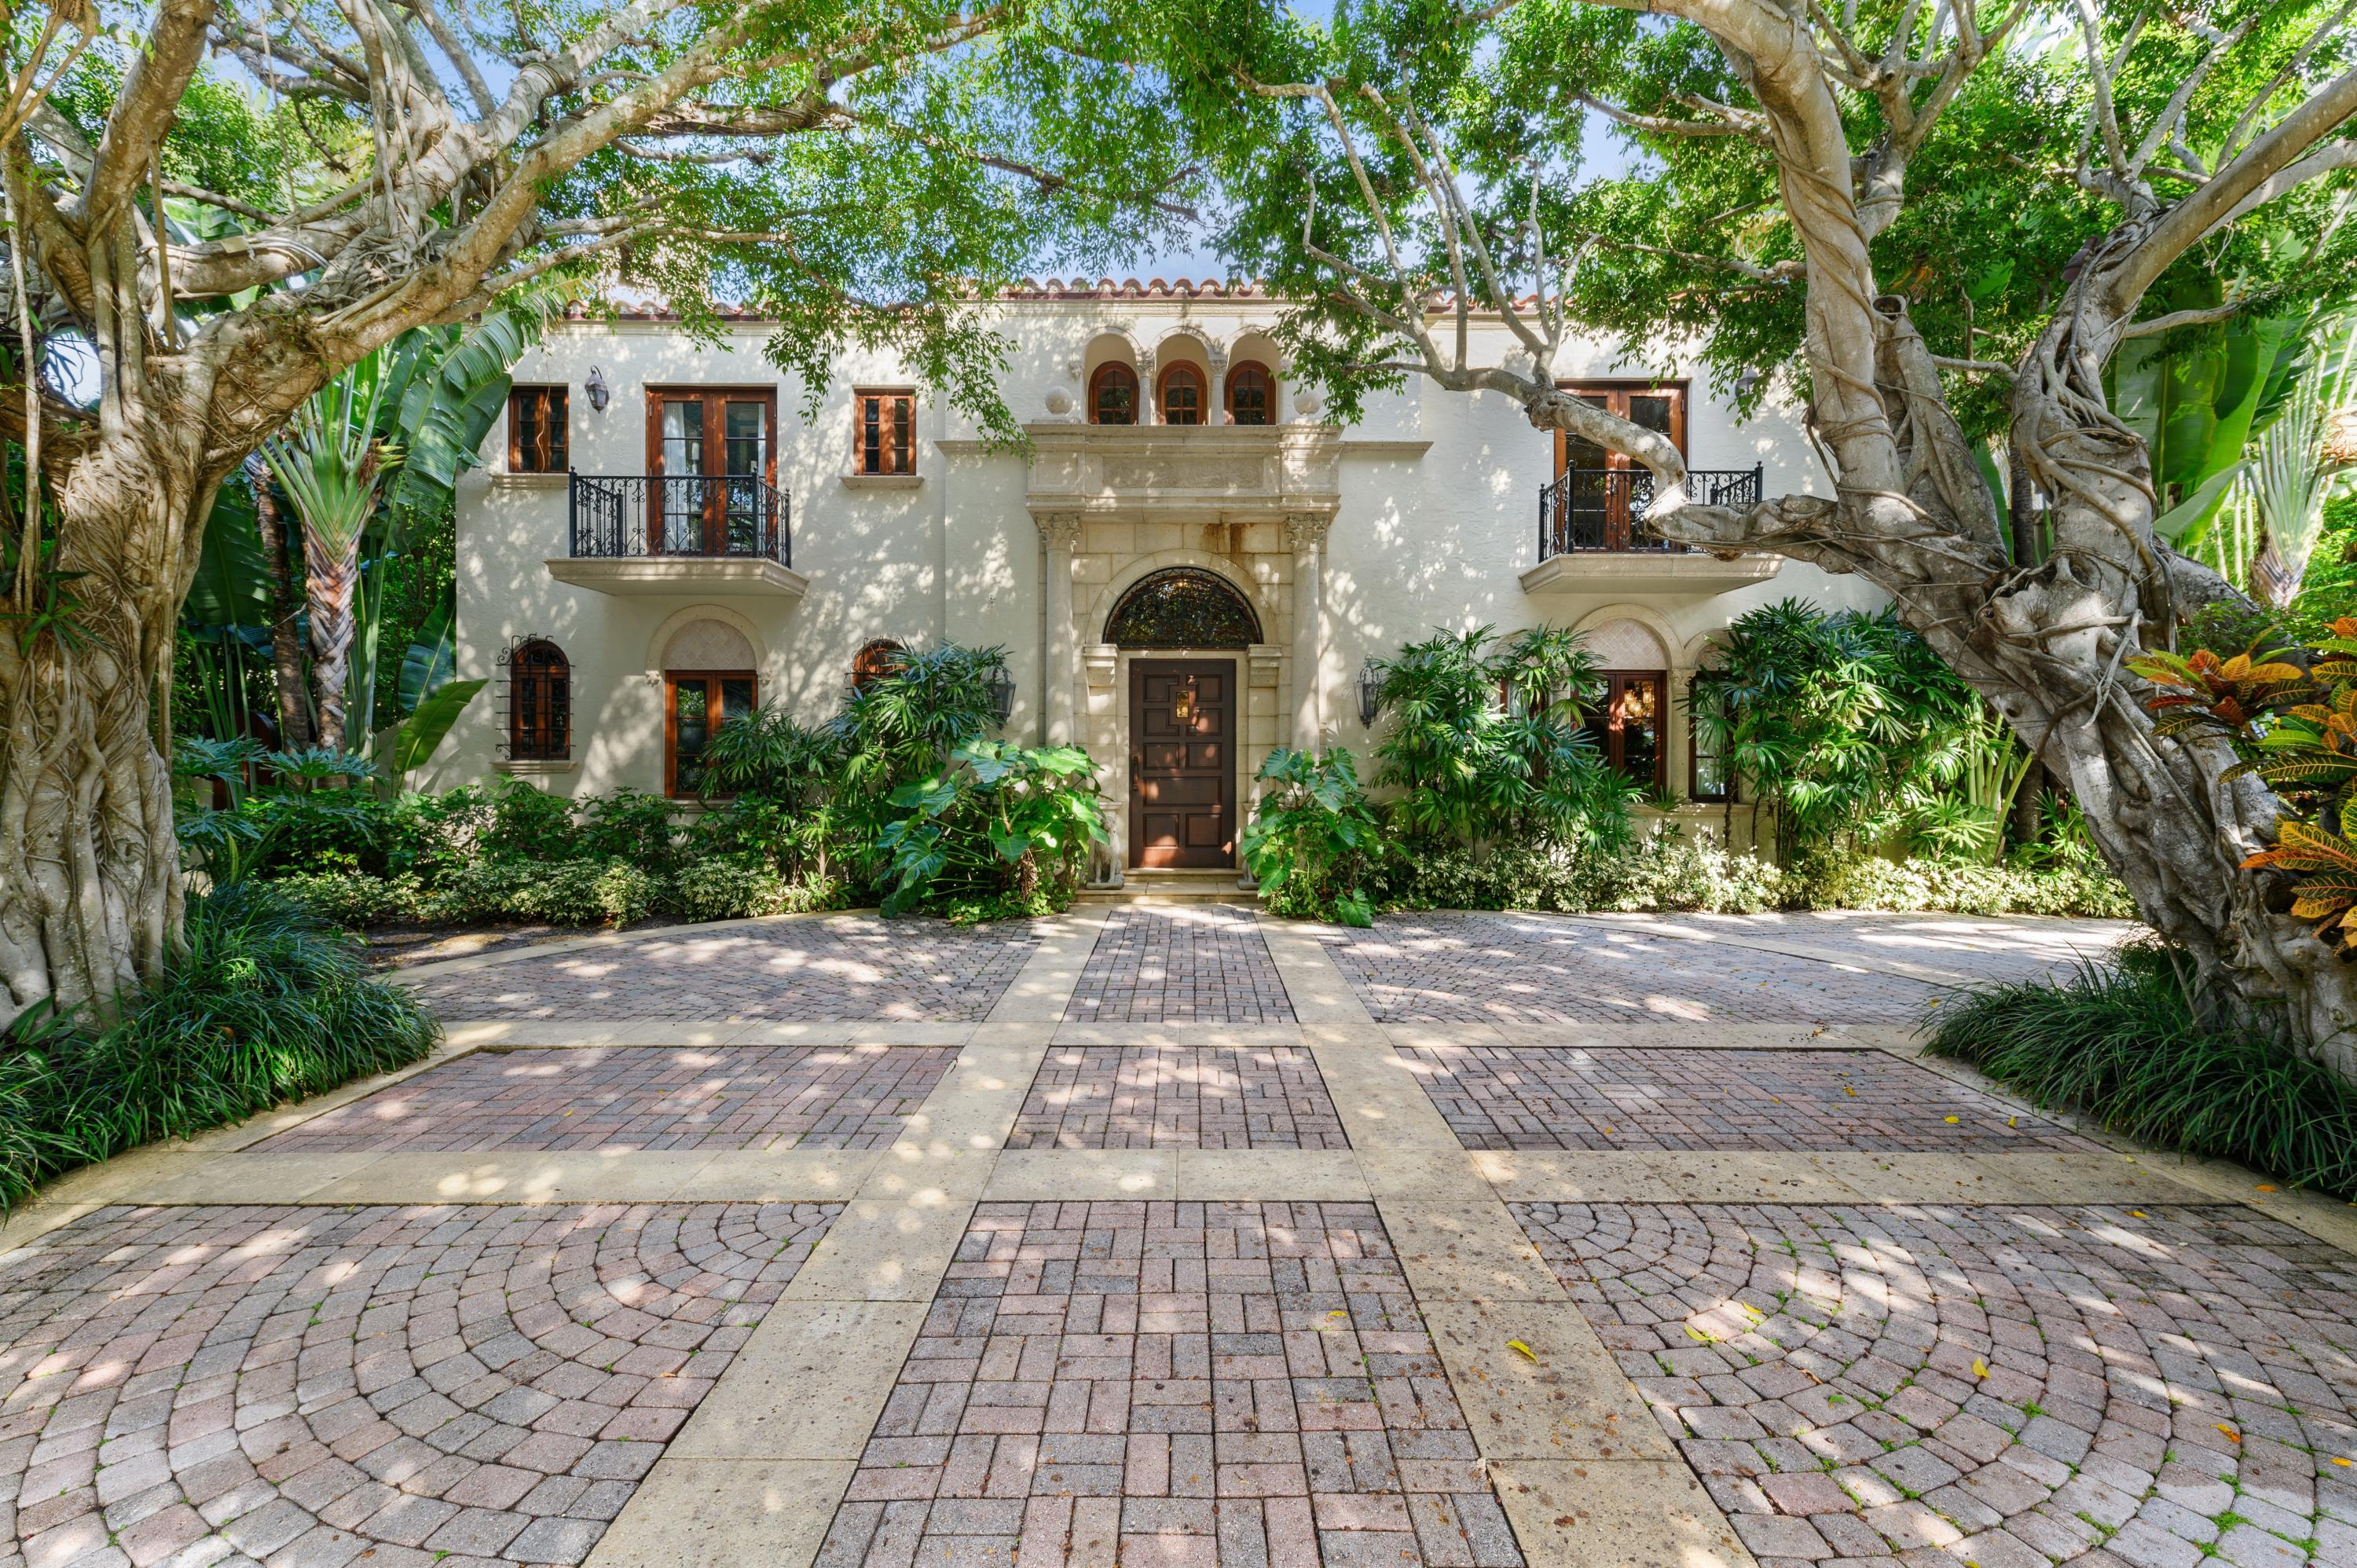 217 Clarke Avenue - Palm Beach, Florida